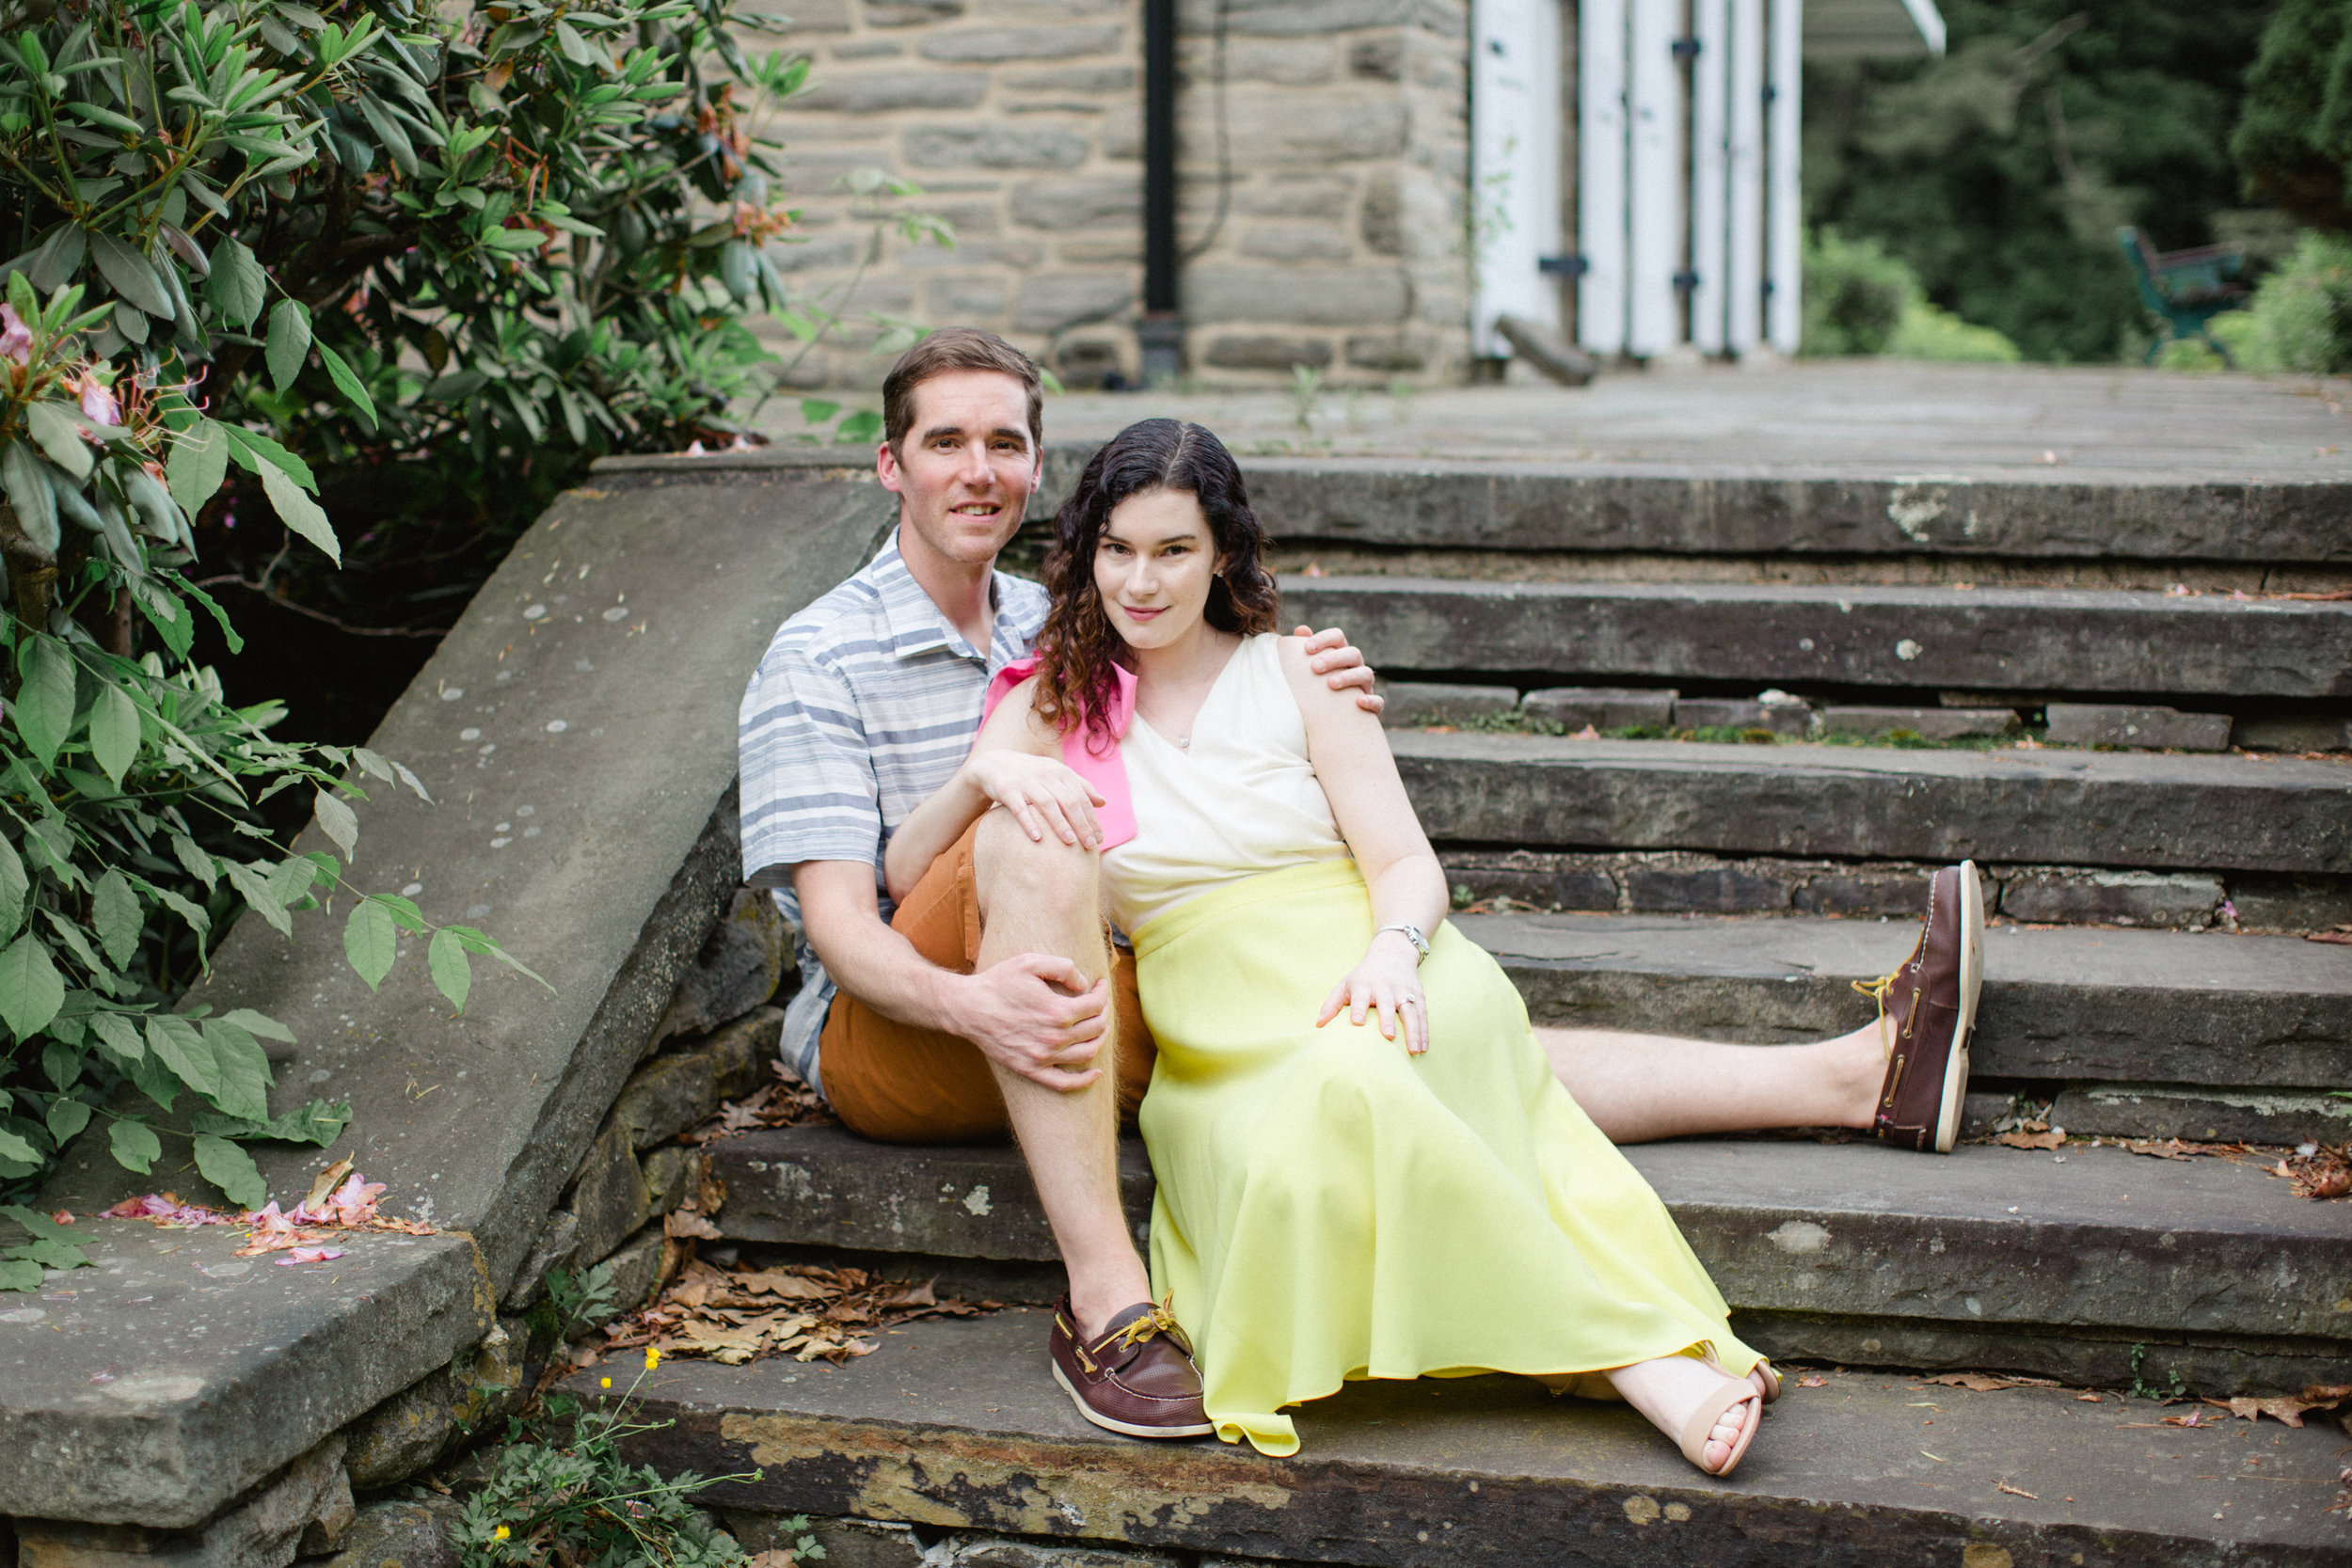 Moscow PA Engagement Session Photos_JDP-11.jpg